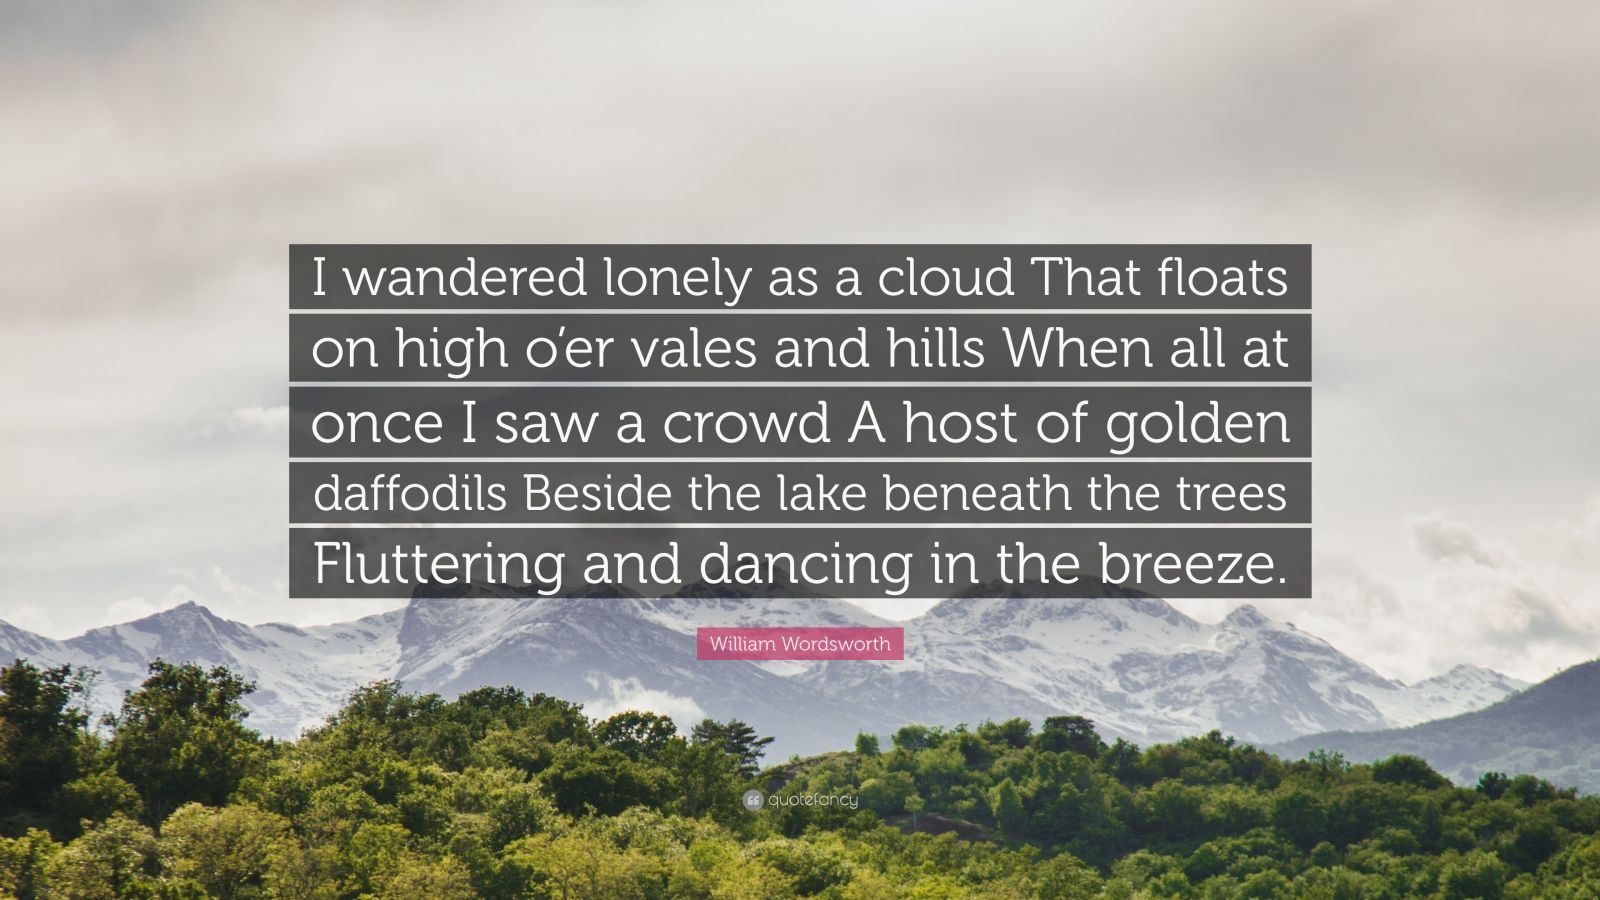 William Wordsworth Quote I Wandered Lonely A Cloud That Float On High O Er Vale And H Positive Attitude Best Inspirational Quotes What The Meaning Of By